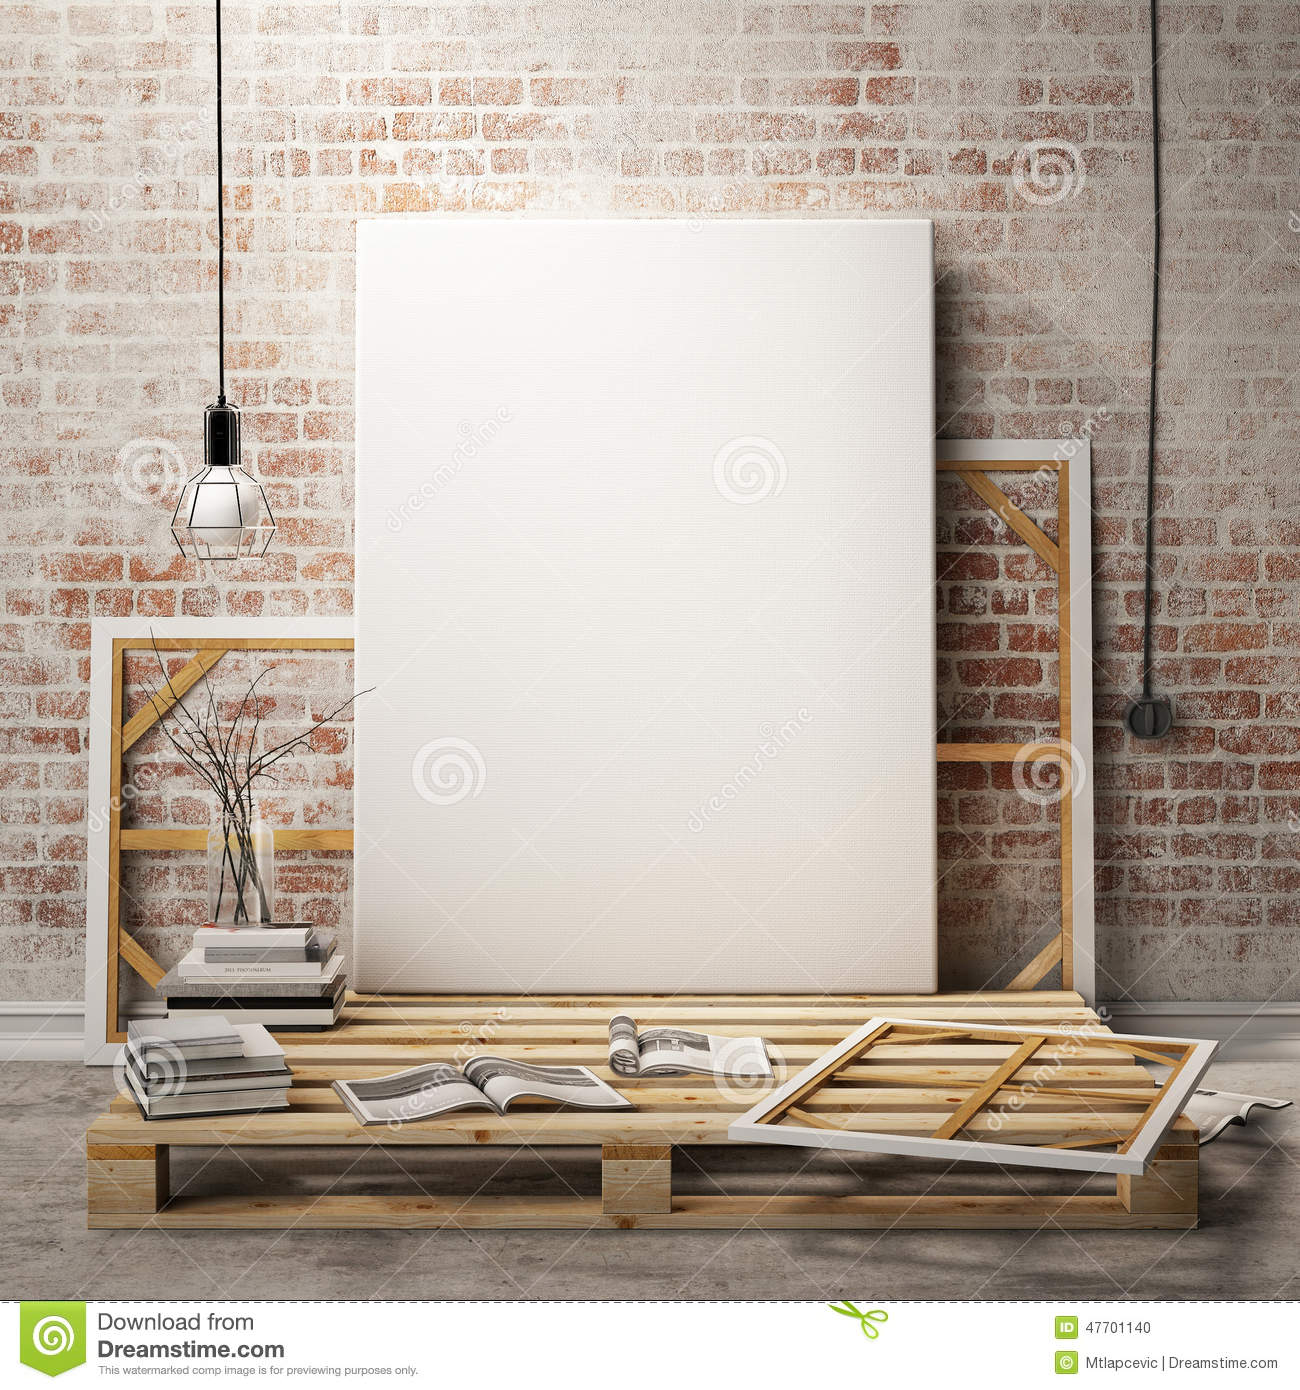 cfb35e3f4c4 Mock Up Posters Frames Stock Illustrations – 151 Mock Up Posters Frames  Stock Illustrations